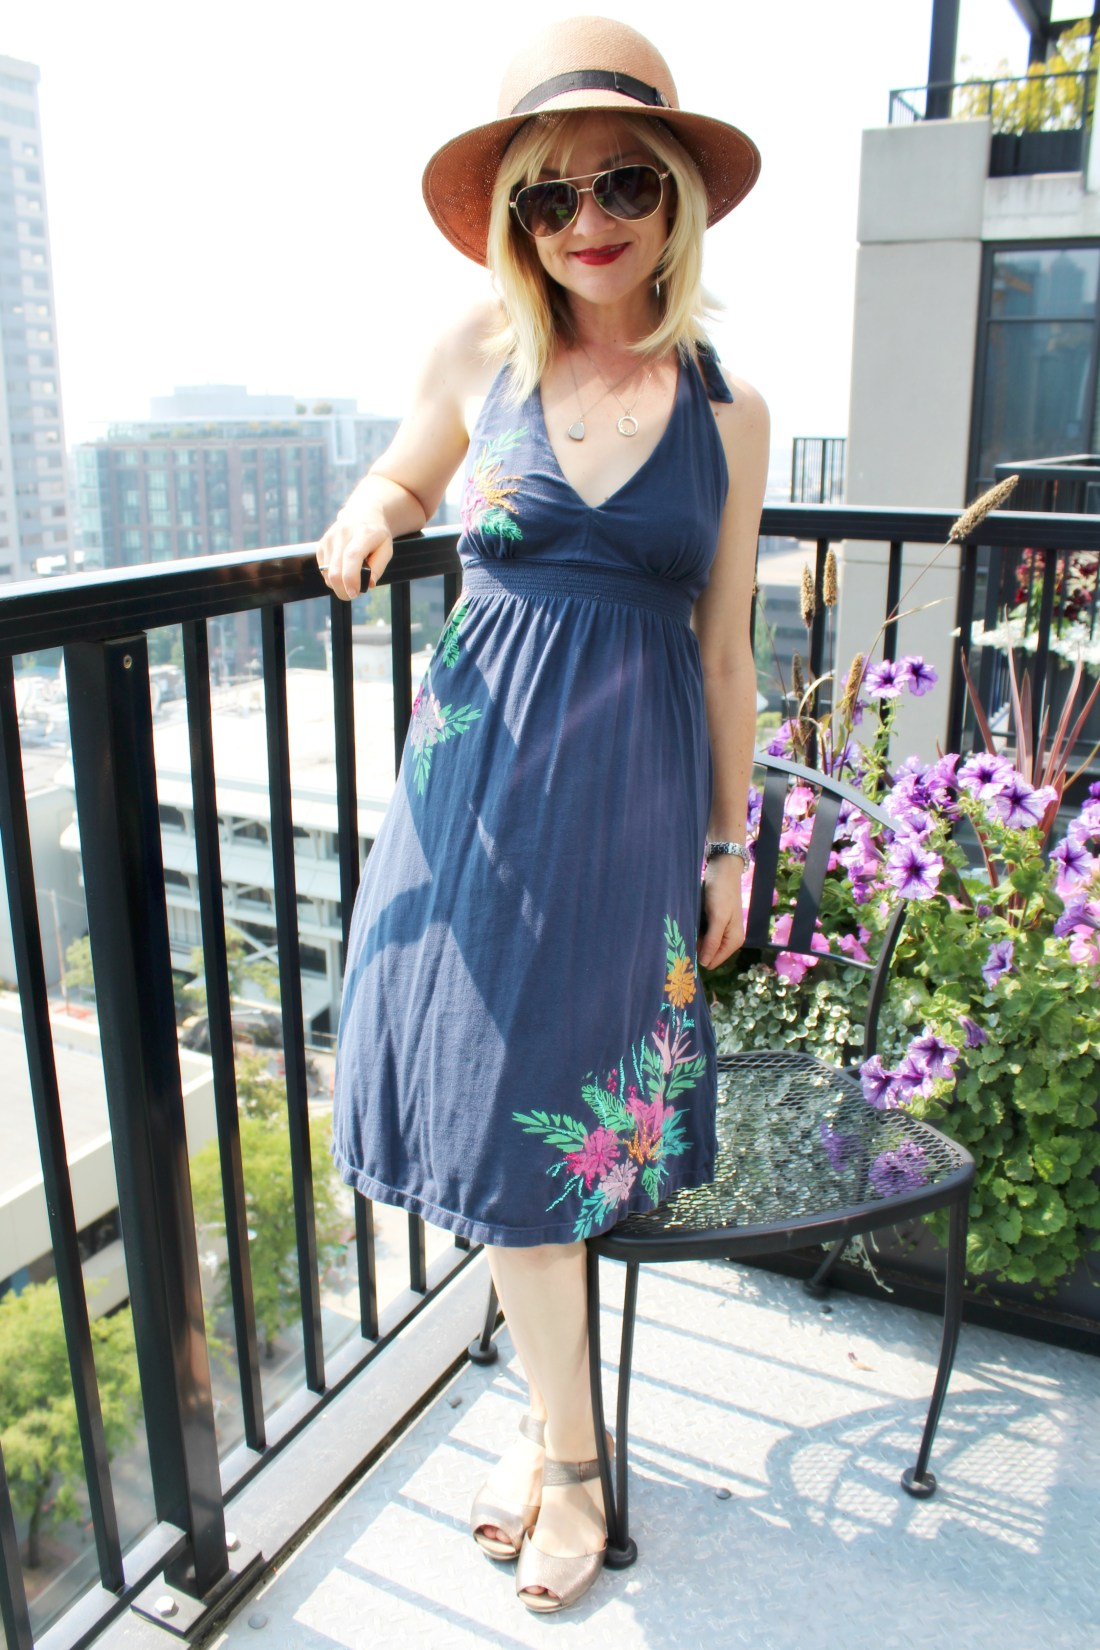 Standing on a balcony wearing a halter dress, a sun hat, sunglasses, and sandals, surrounded by flowers.